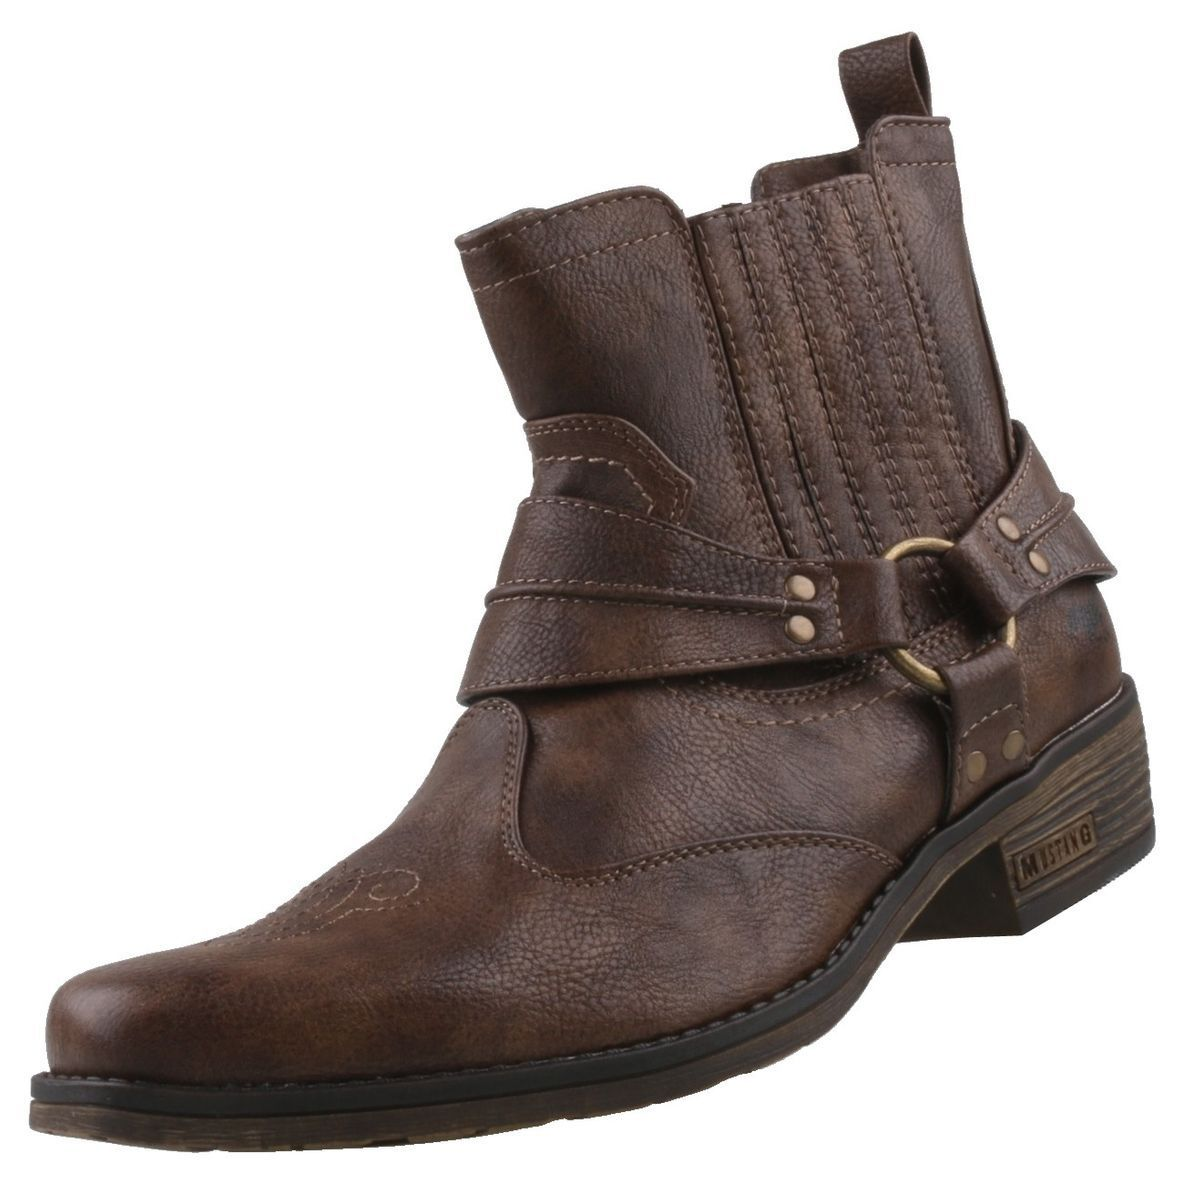 New Mustang Men's shoes Smoken Cowboy Ankle Boots